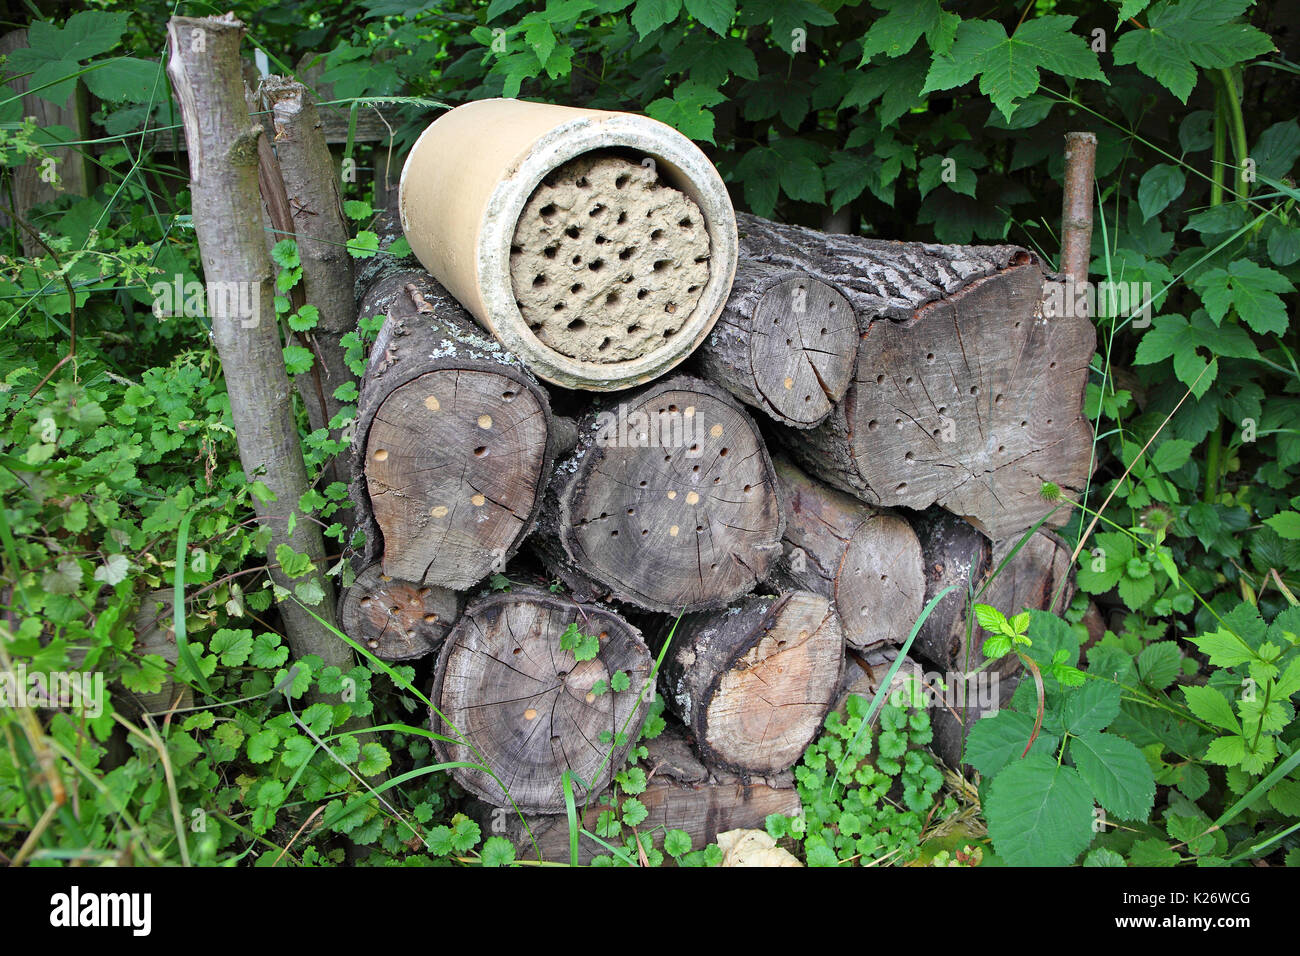 Wooden pile with drillings as a nesting aid for solitary wild bees, solitary bees, Germany - Stock Image